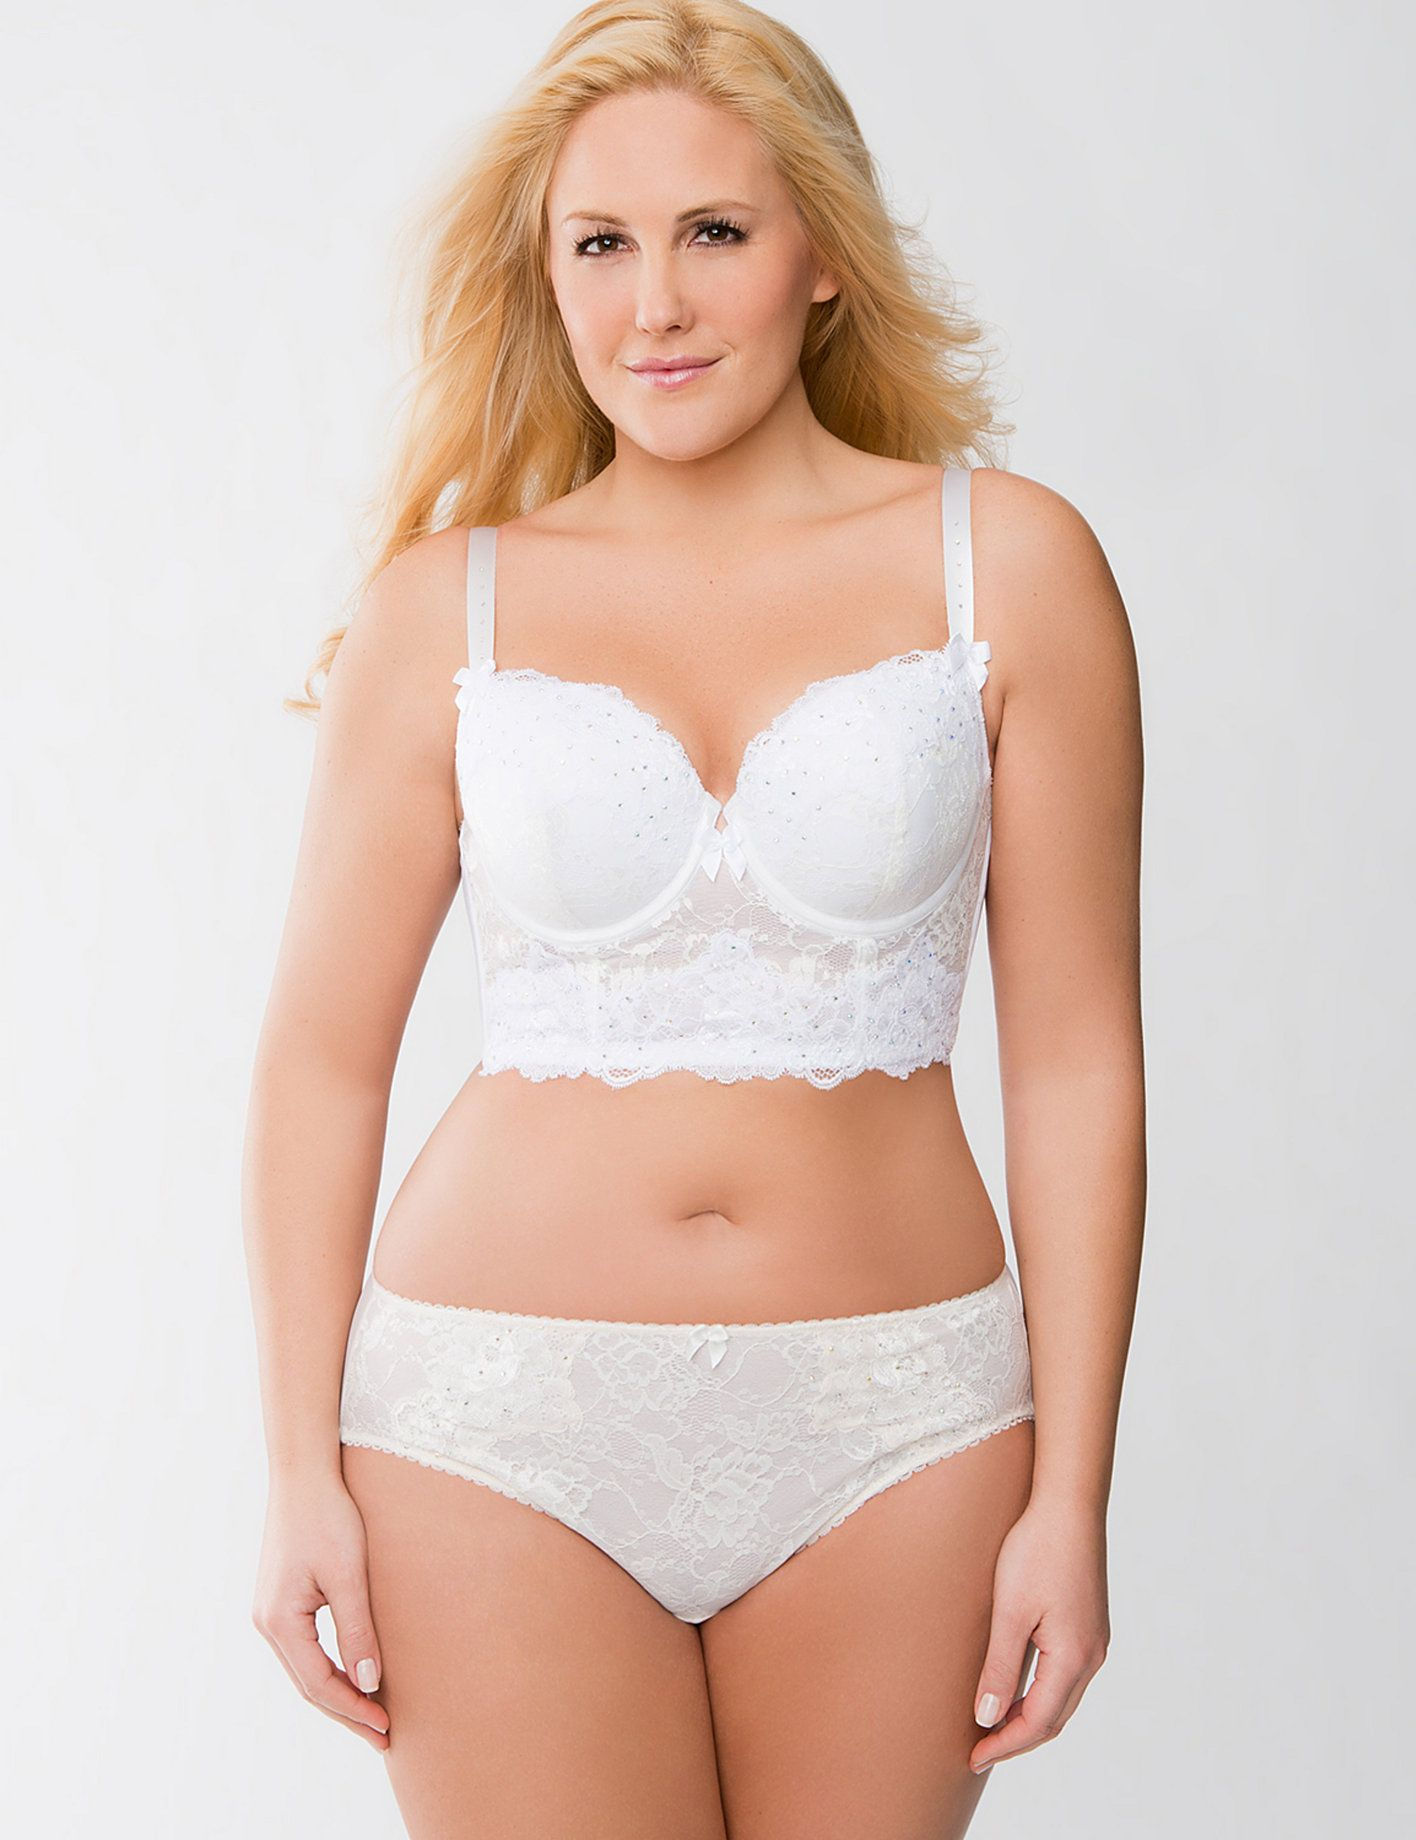 Sexy plus size wedding lingerie